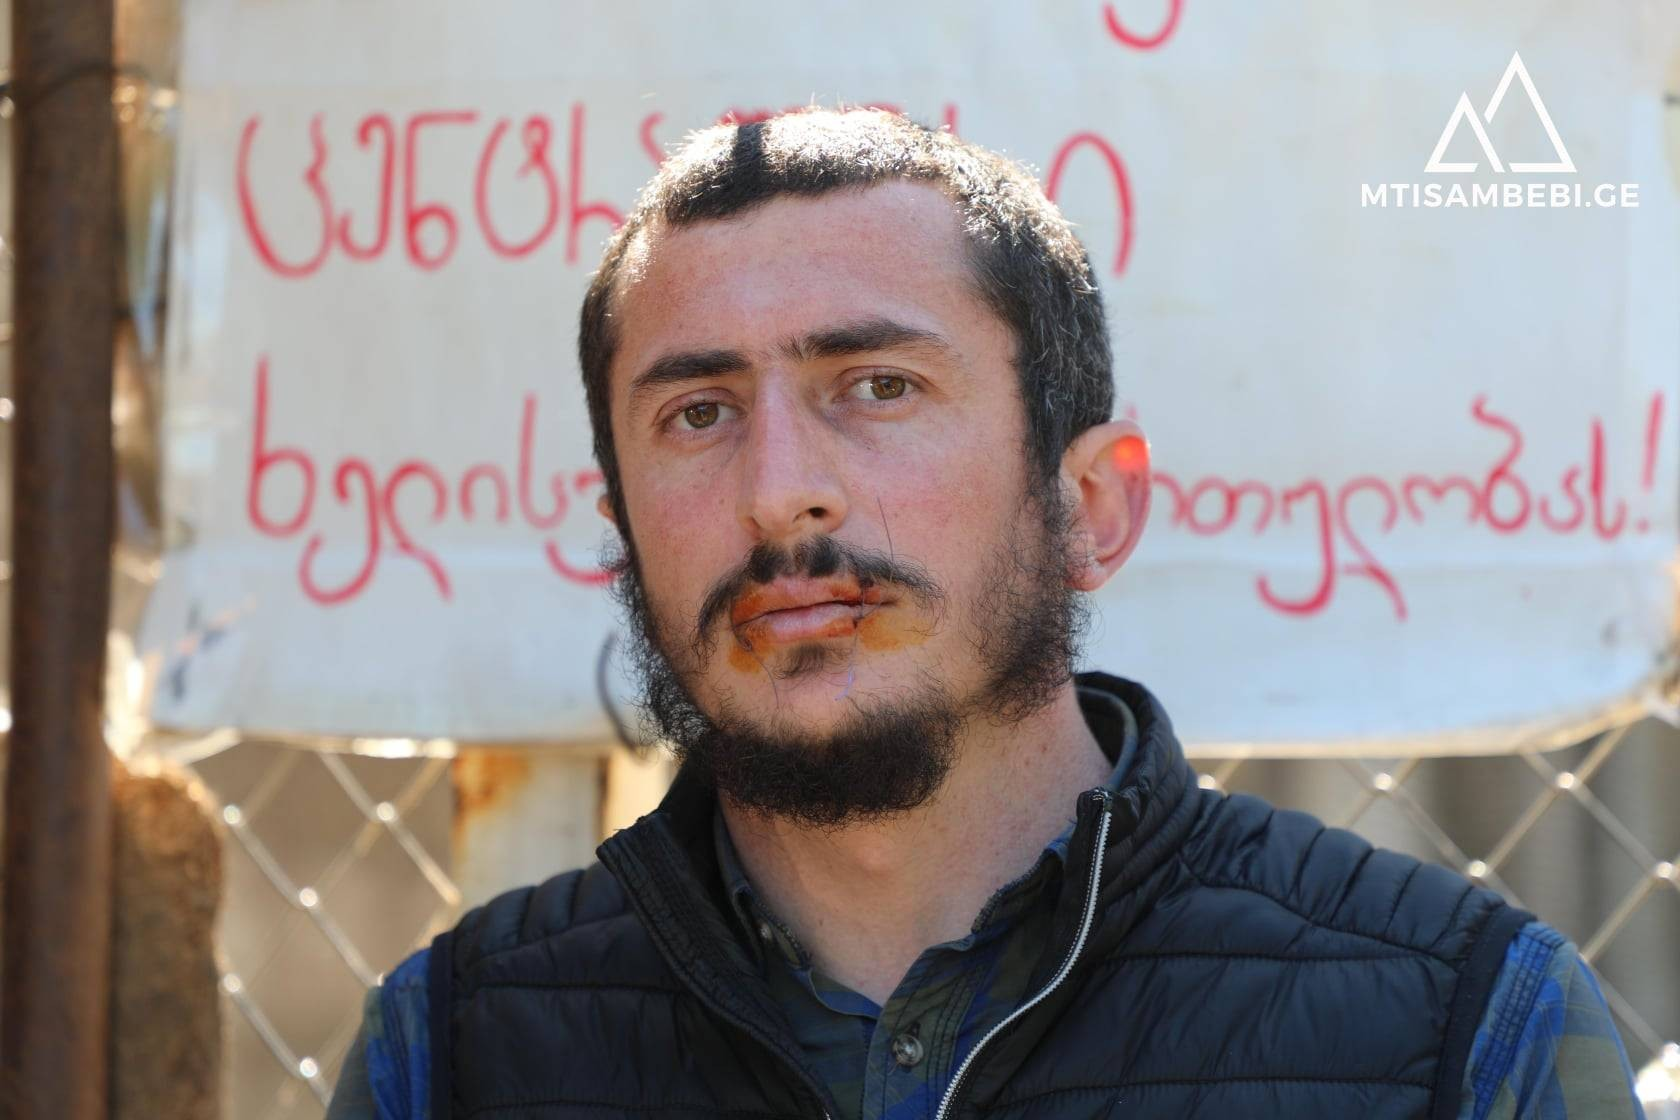 Response to the protest taking place in the village of Shukruti